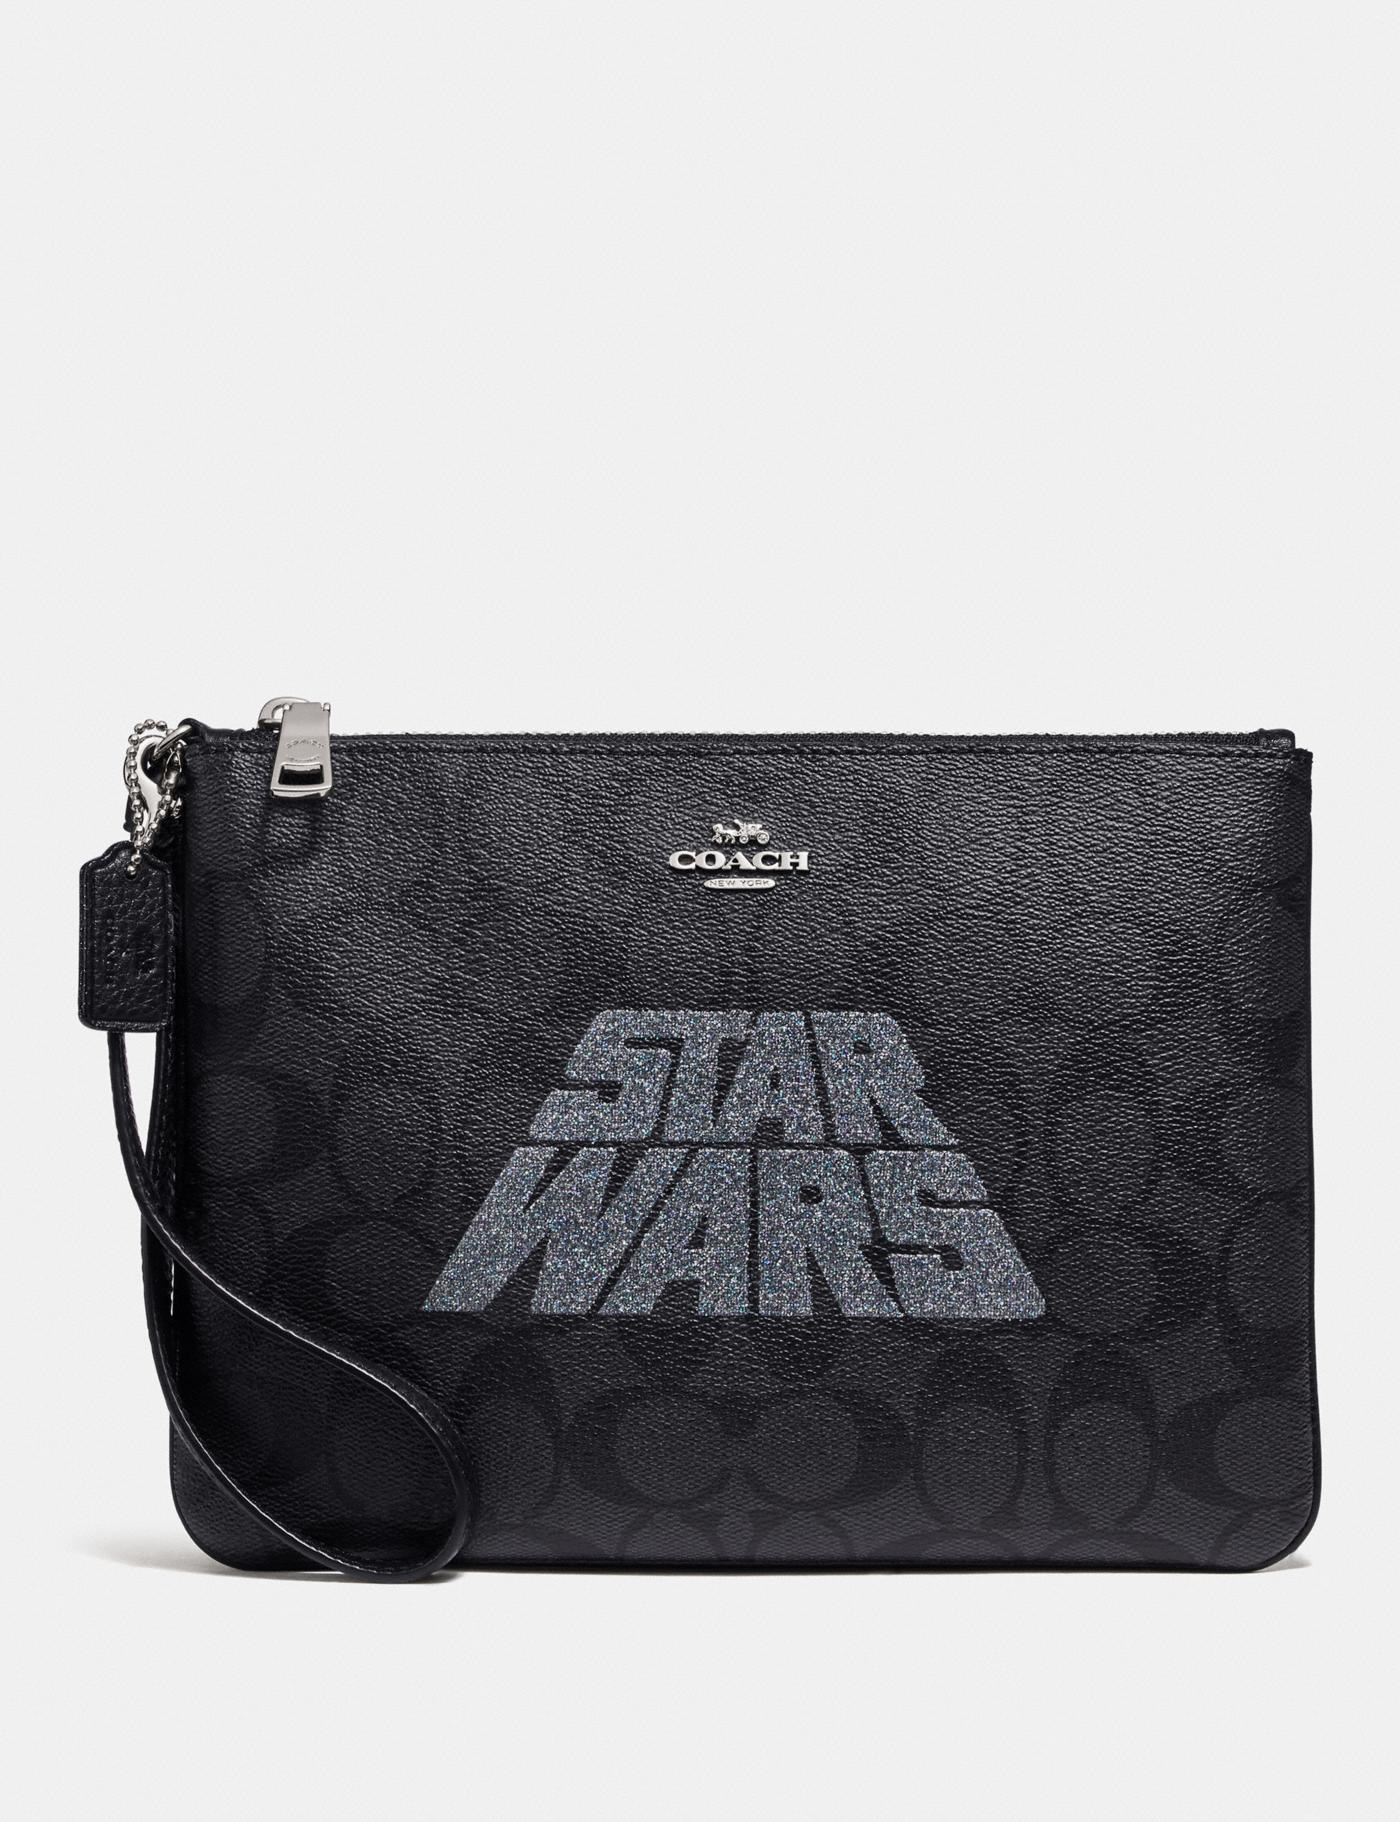 Coach x Star Wars 2019 Collection